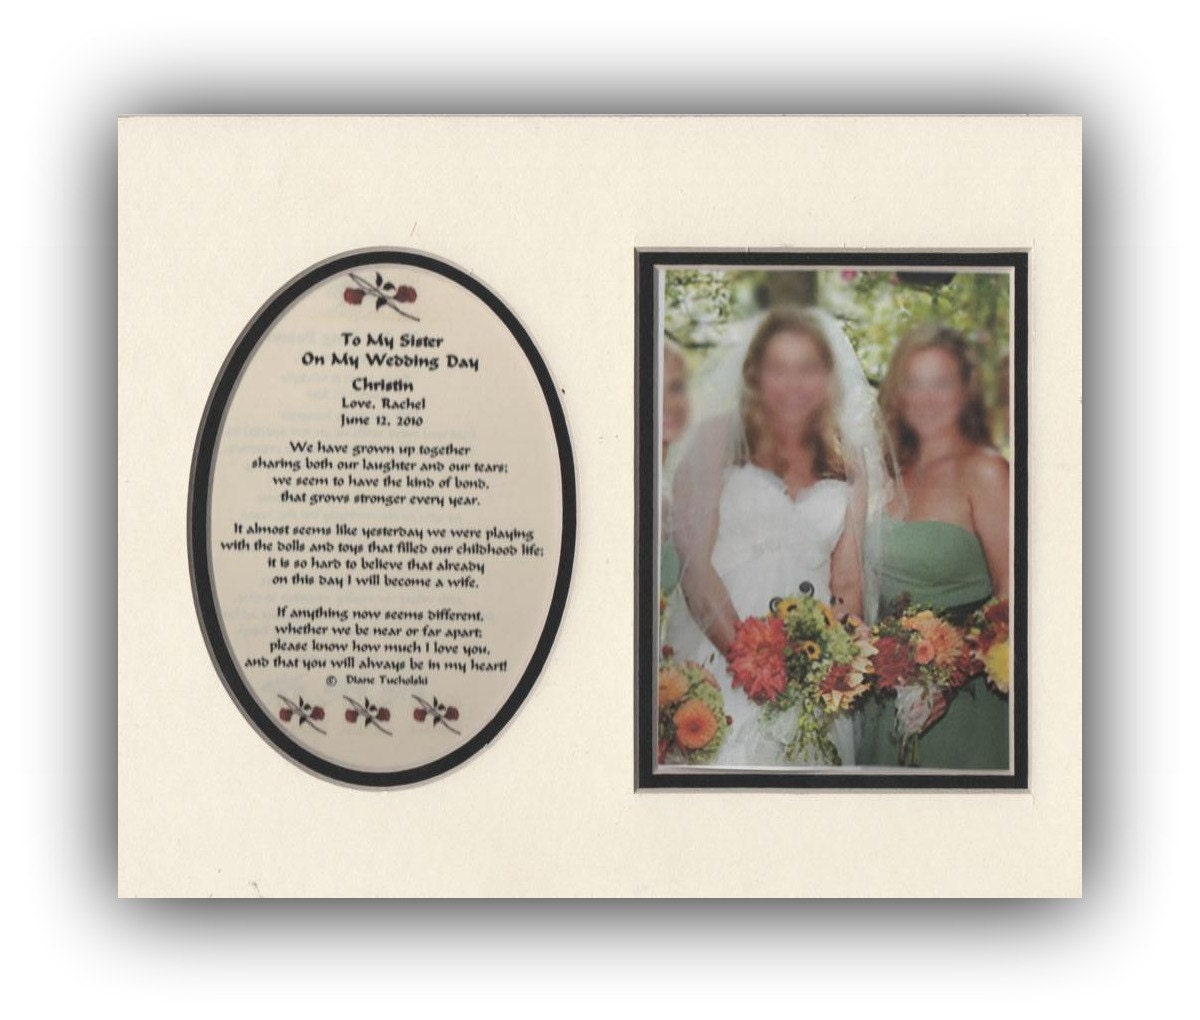 Wedding Gift To Sister : ... similar to To My Sister On My Wedding Day Bridal Gift Favor on Etsy